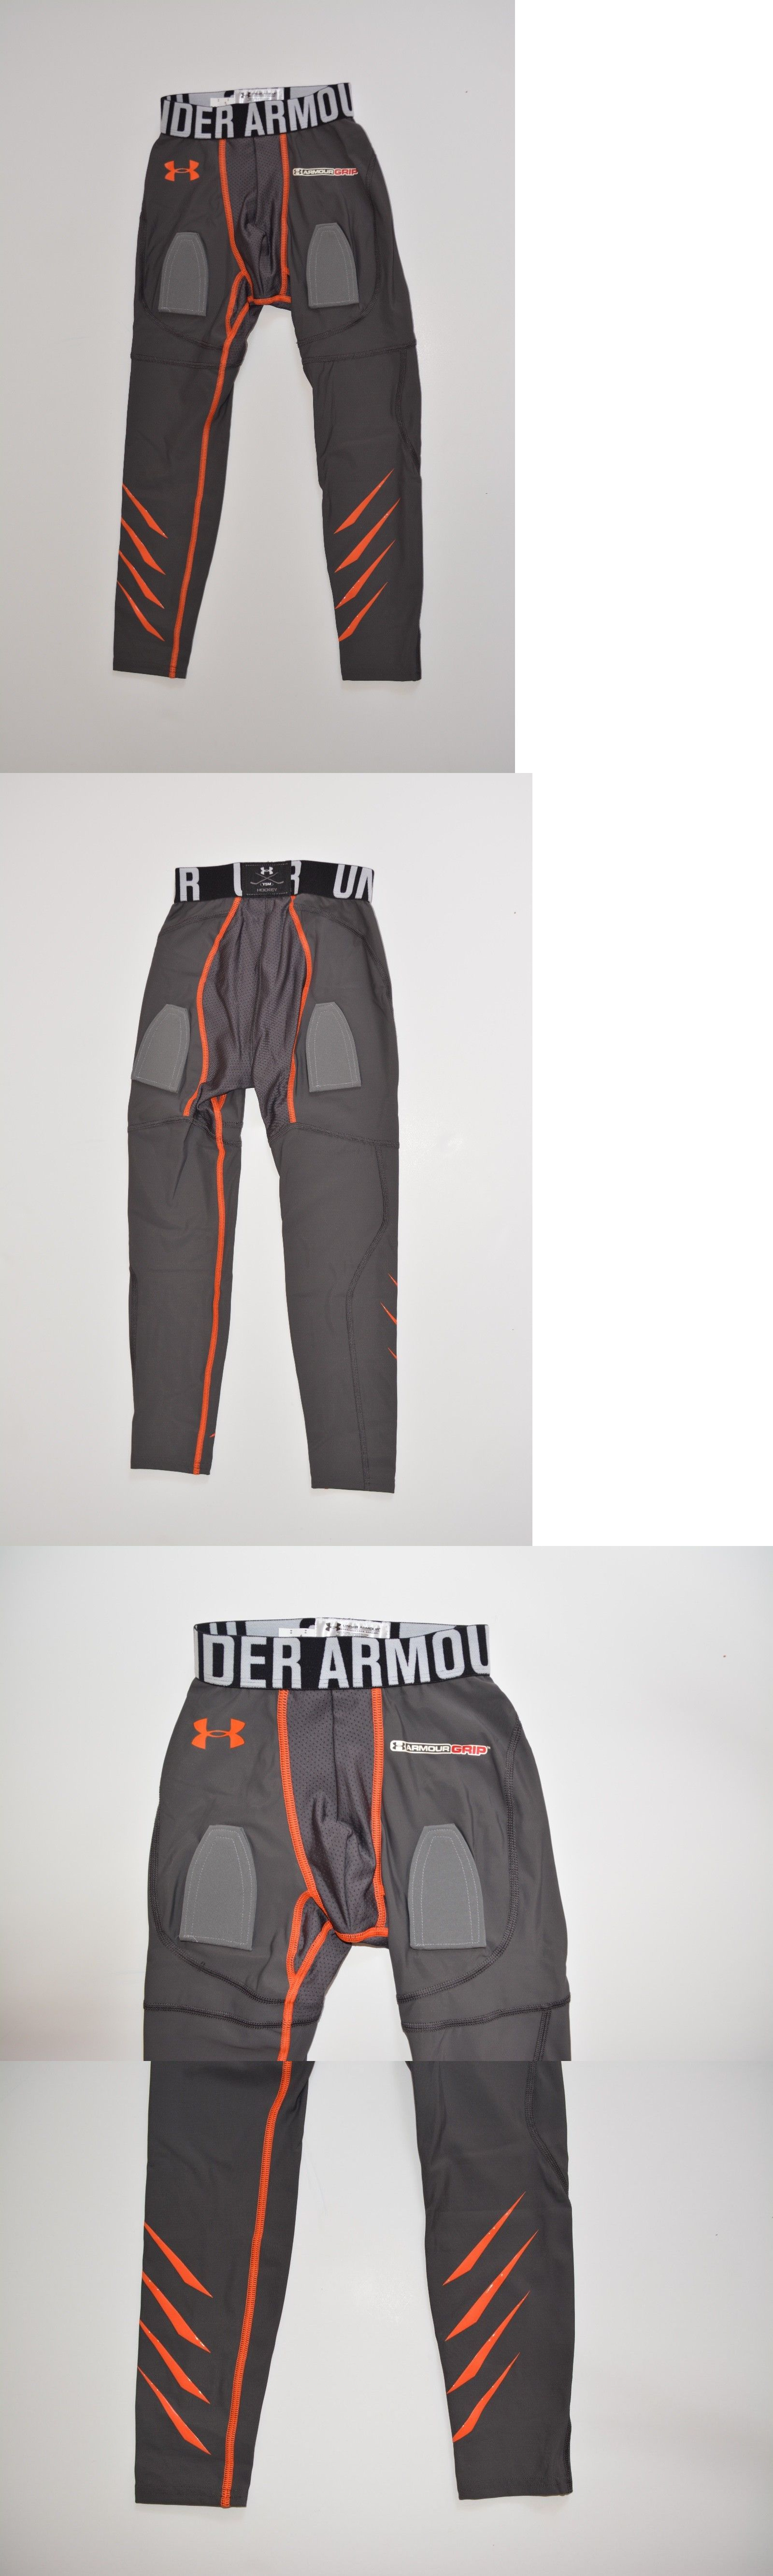 b33f044eb1f17b Compression and Base Layers 179828: Under Armour Boys Hockey Gray Grip  Compression Leggings Pants Youth Small -> BUY IT NOW ONLY: $40 on eBay!